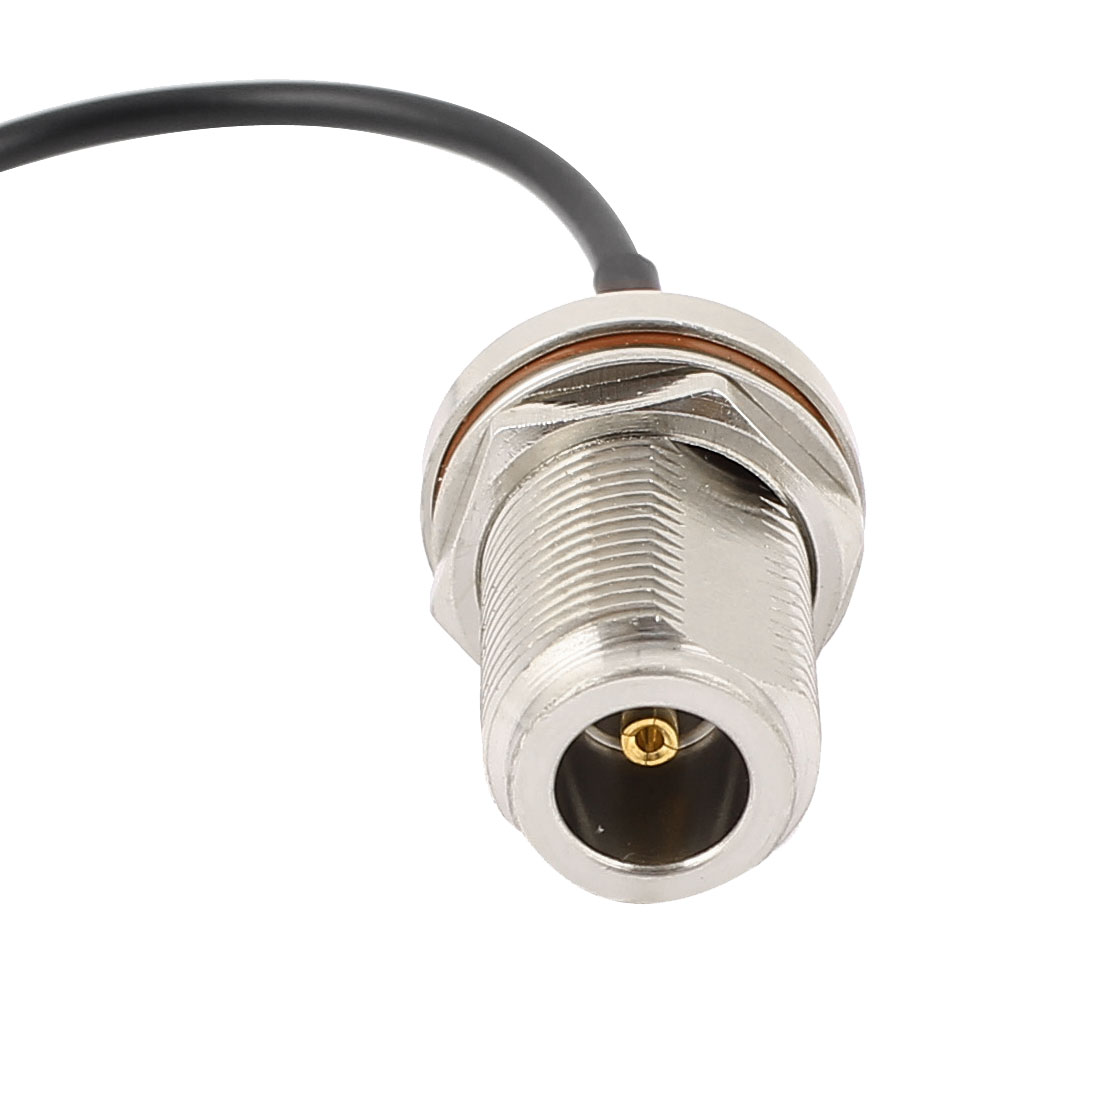 MCX-JW Female to N-KY Female RG174 Coaxial Cable Pigtail 15cm - image 2 de 3